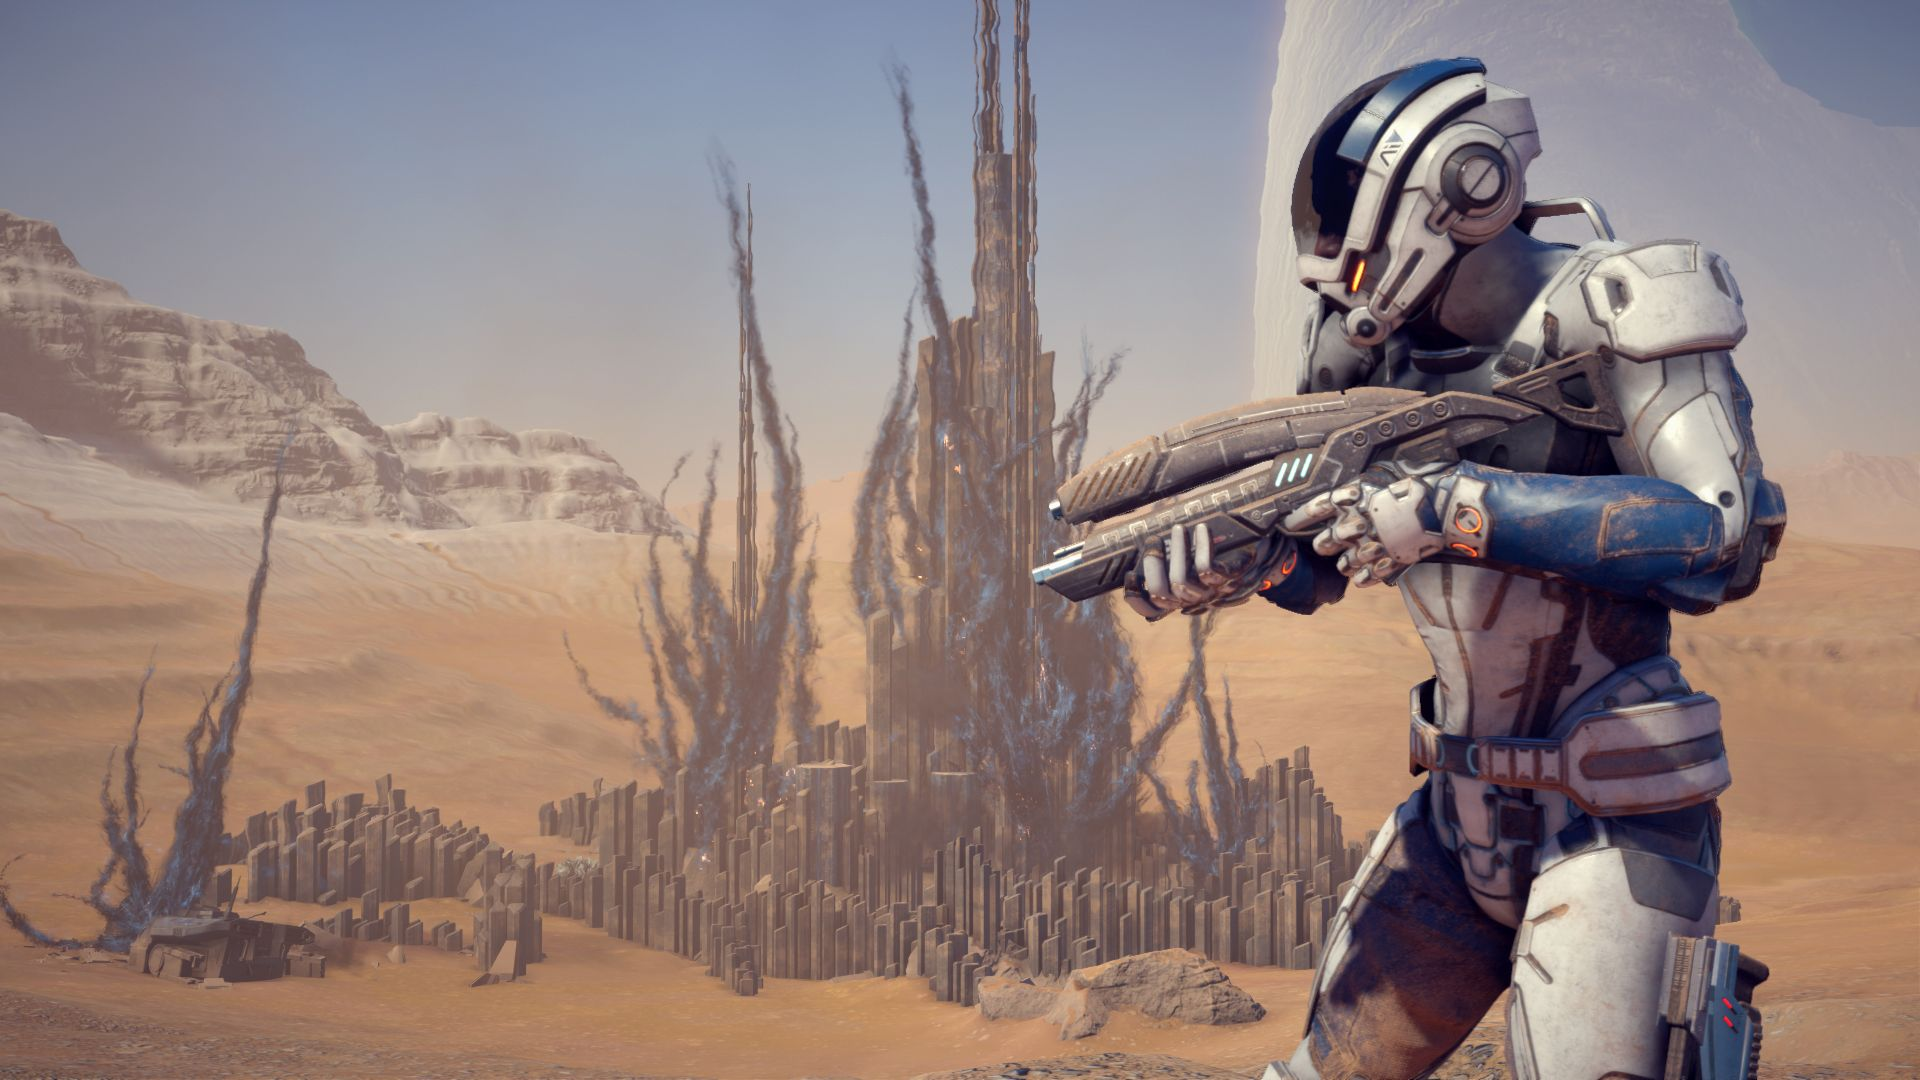 Mass Effect Andromeda Arrives in EA Access Vault This Holiday Season